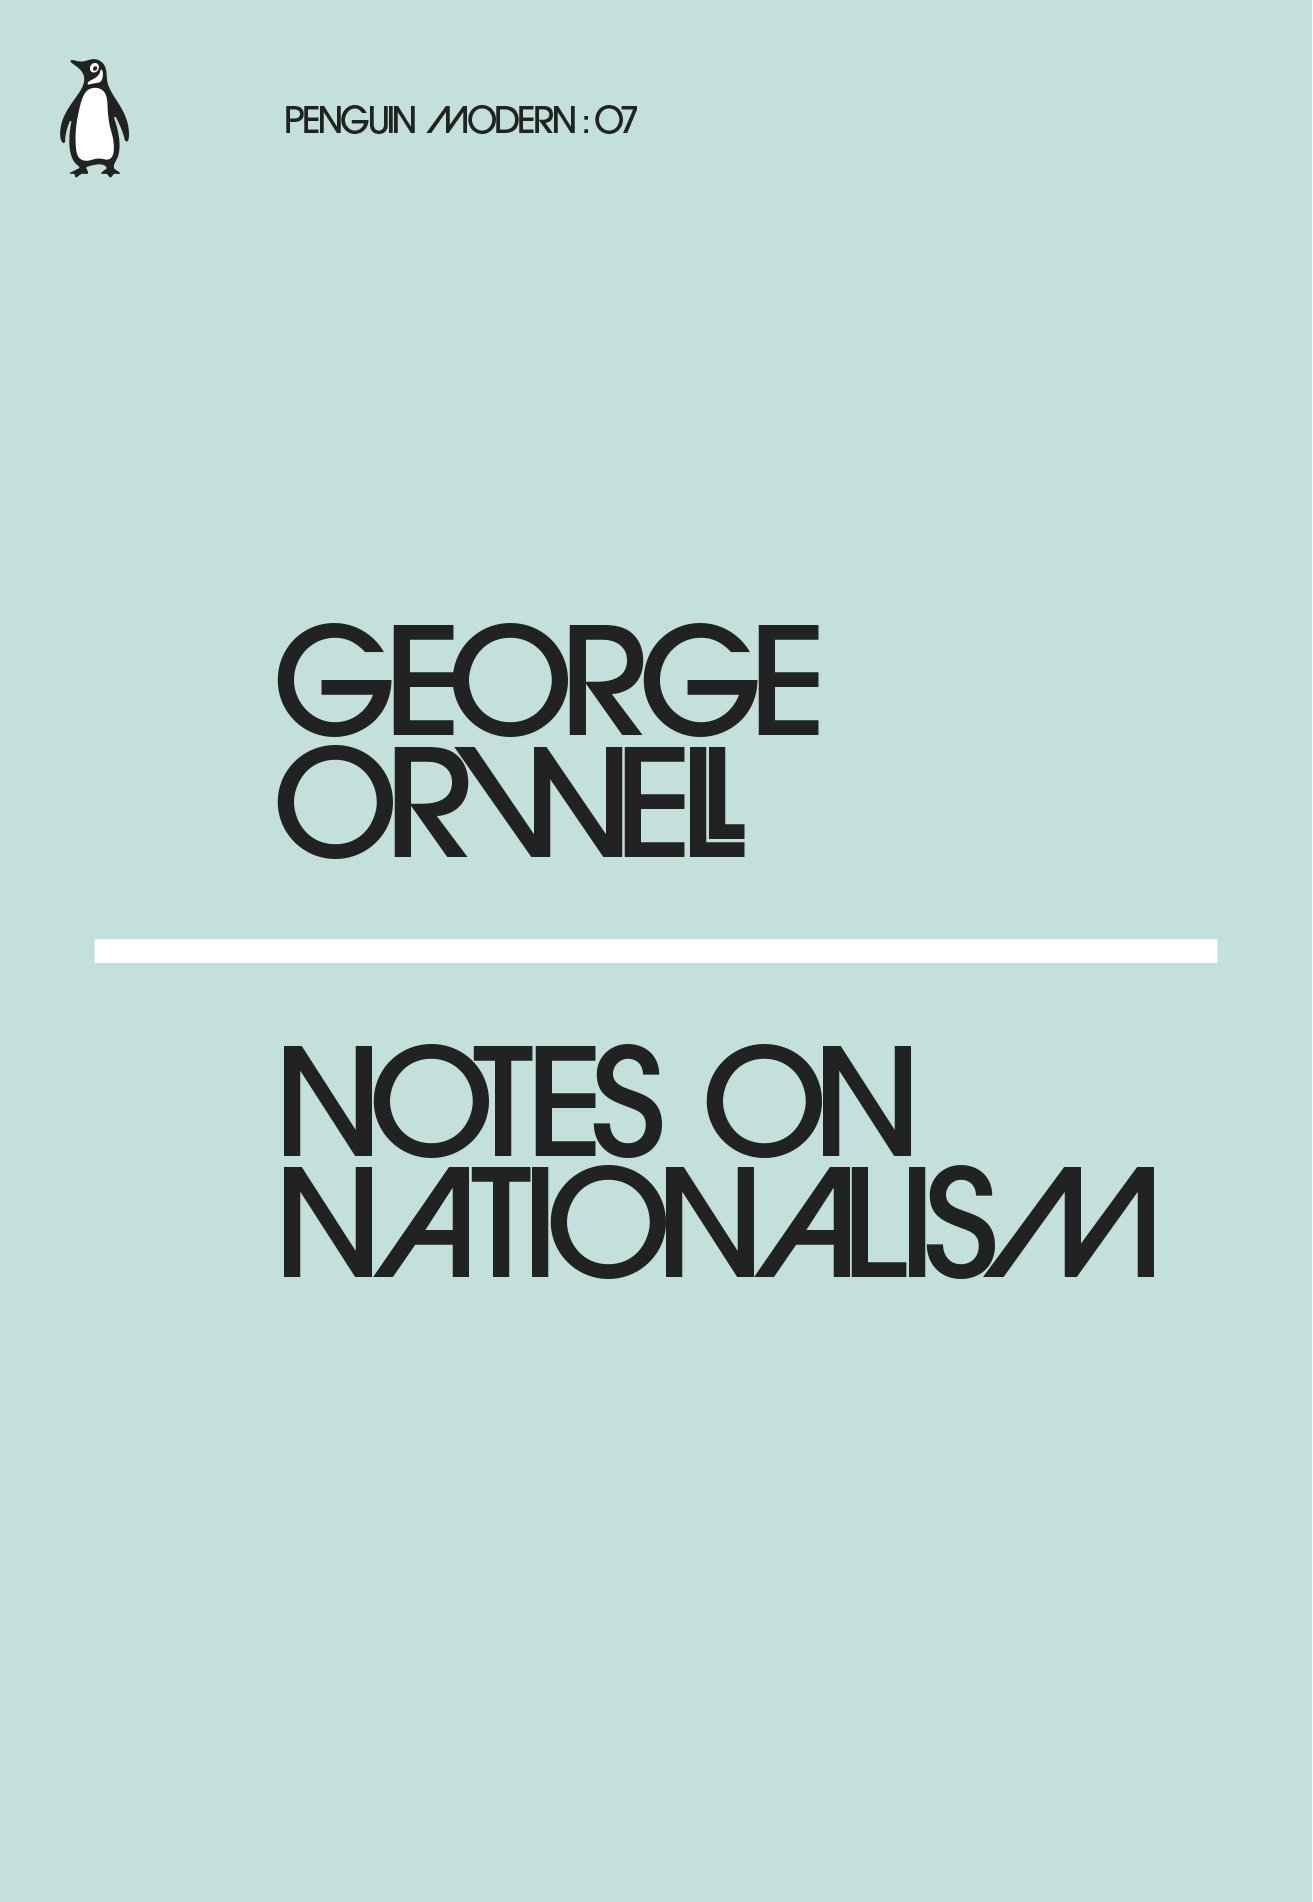 Notes on Nationalism (Penguin Modern): GEORGE ORWELL: 9780241339565 ...